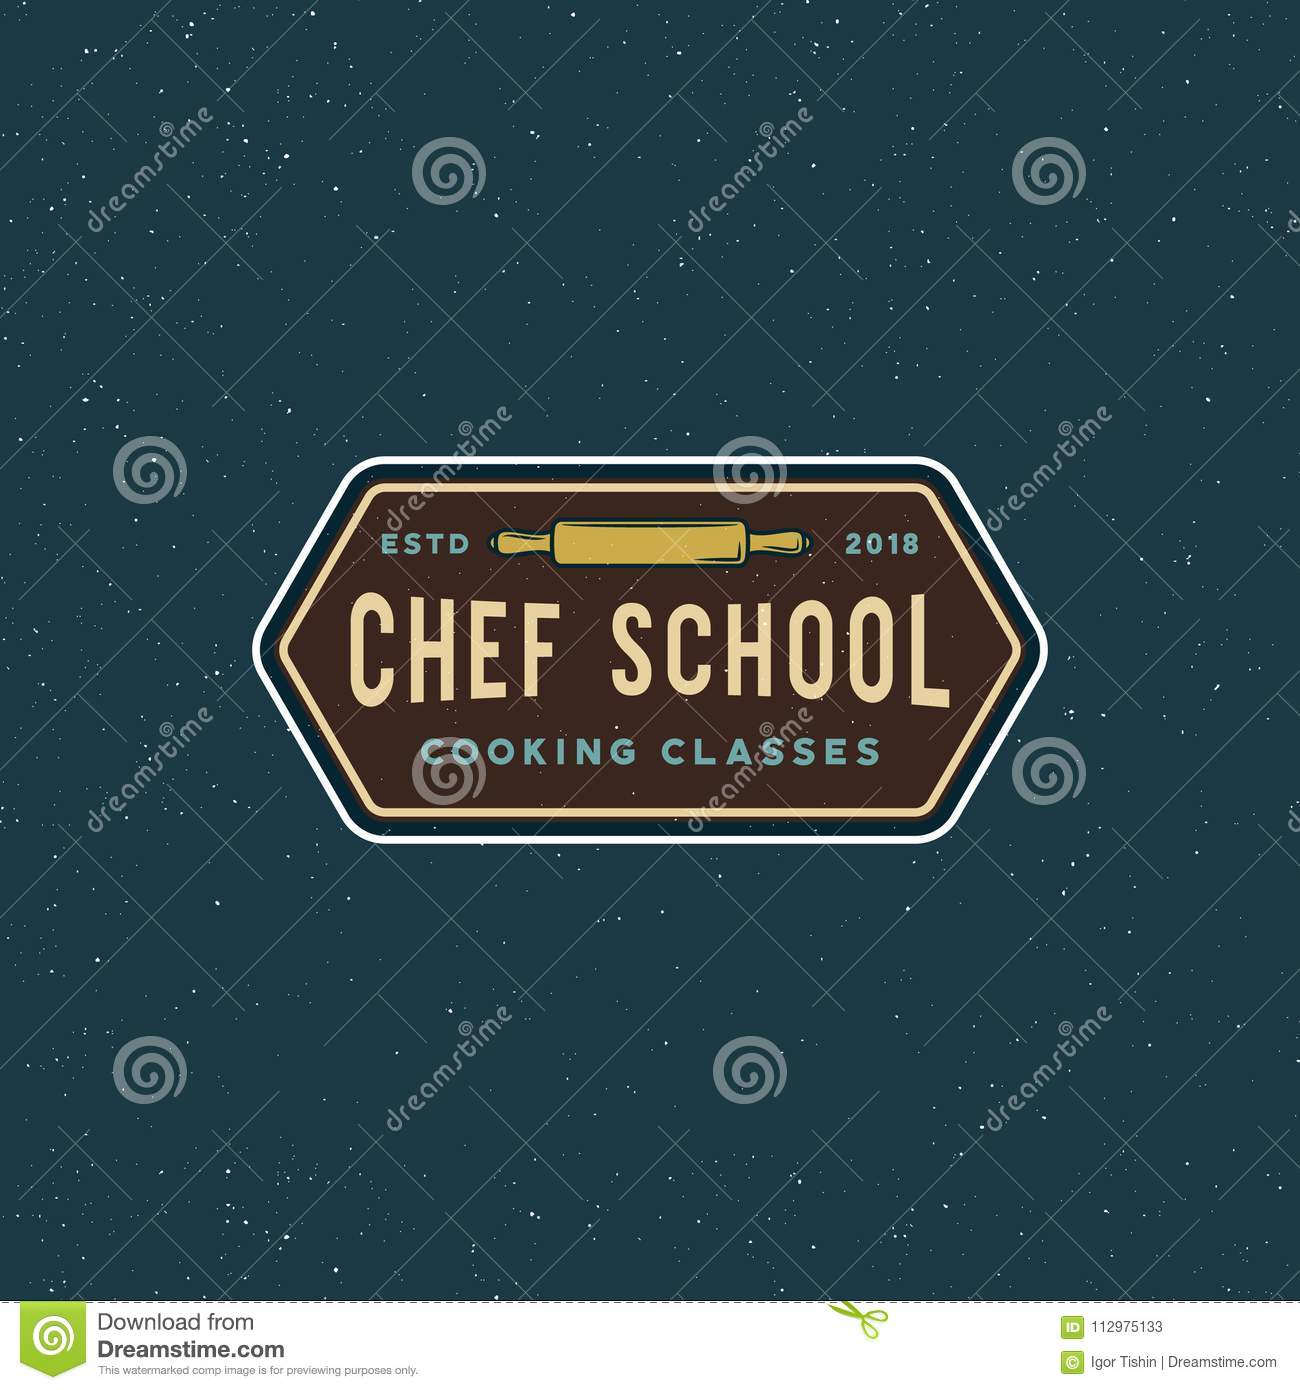 Vintage cooking classes logo. retro styled culinary school emblem. vector illustration